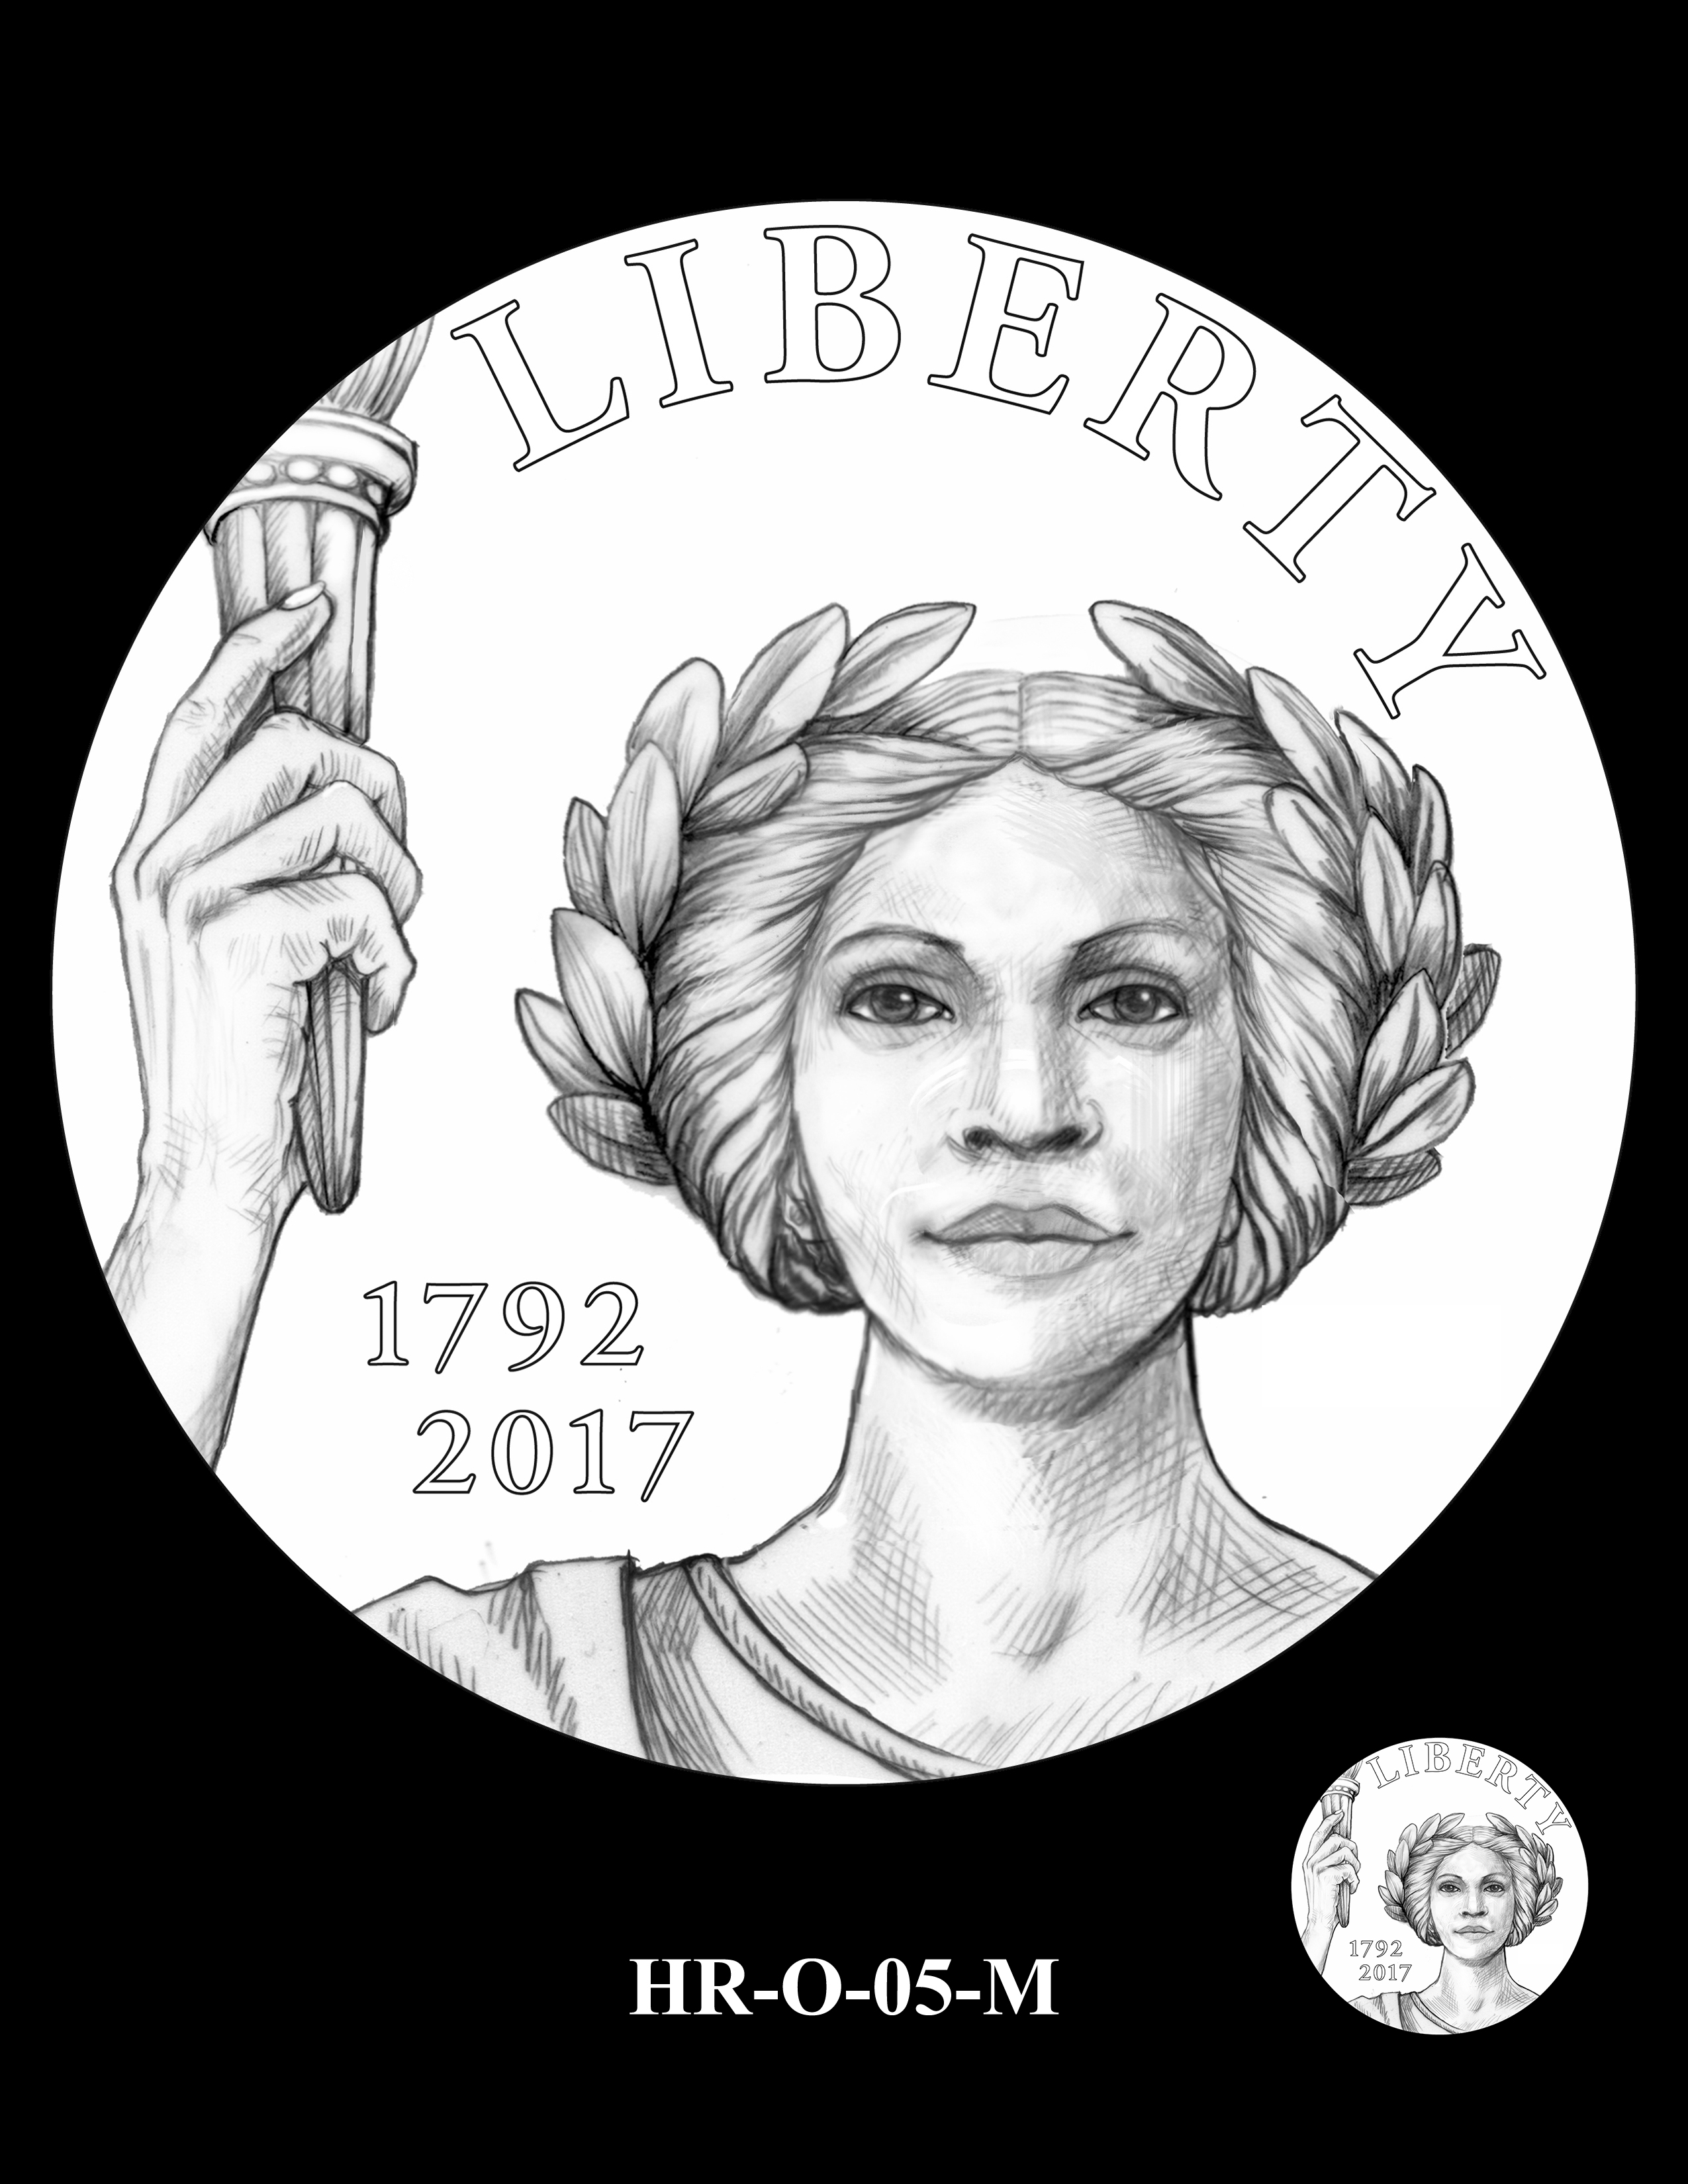 HR-O-05-M - 2017 American Liberty High Relief Gold Coin and Silver Medal Program